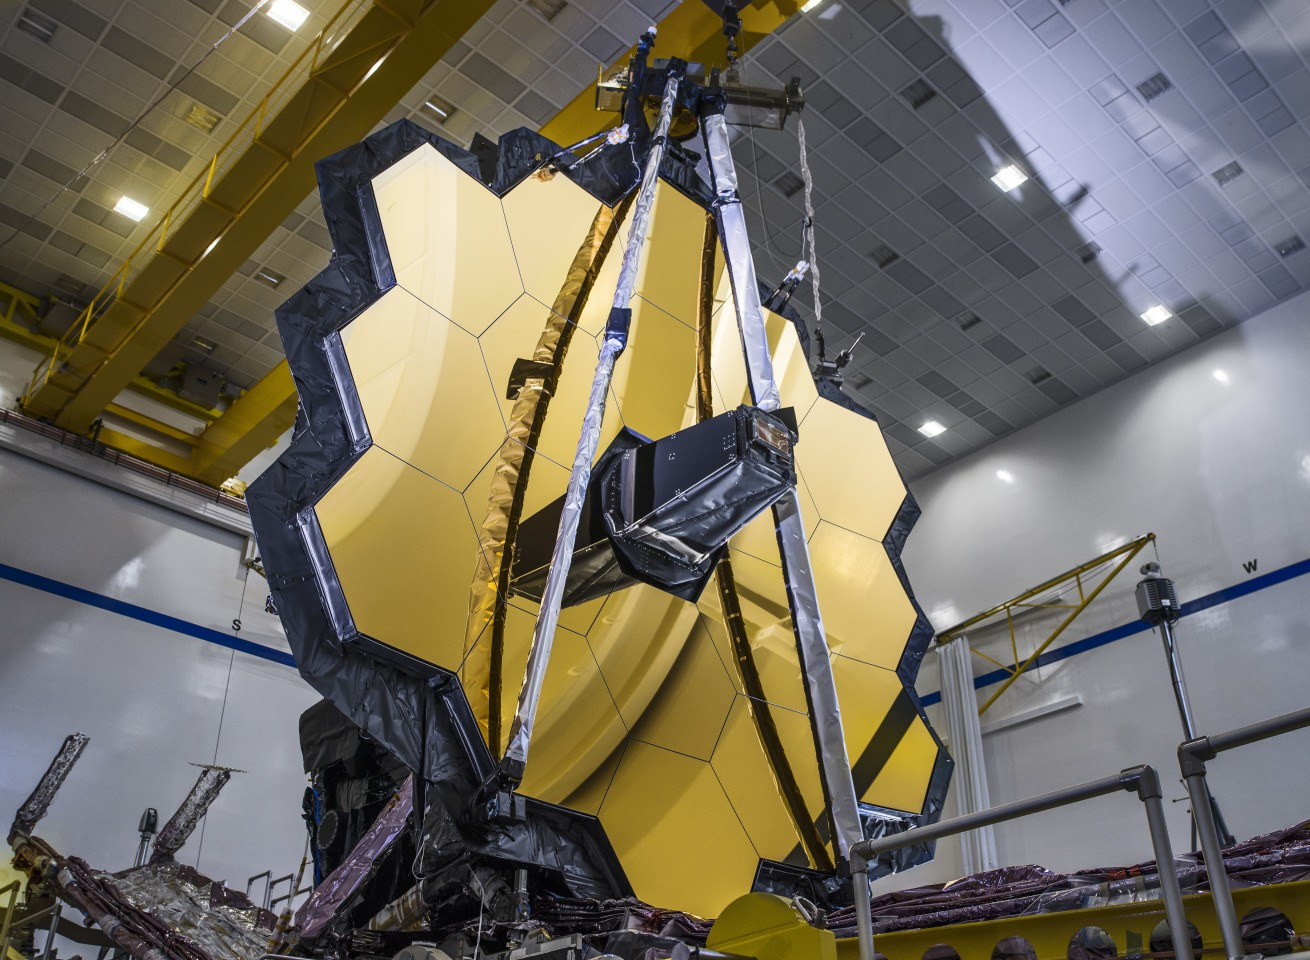 NASA unfurls the mirrors of the James Webb Space Telescope in a deployment test